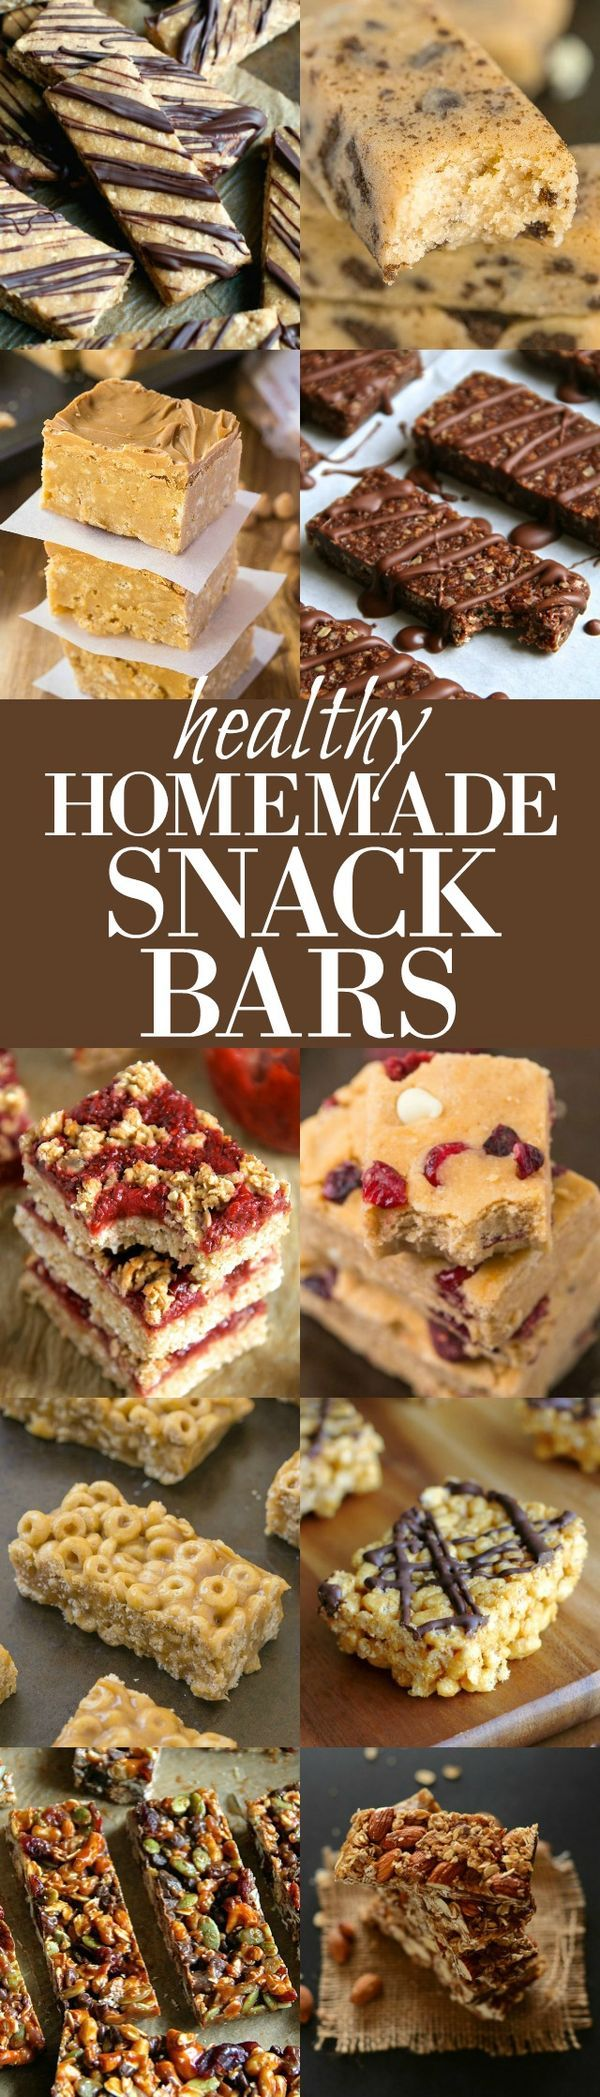 Don't pay an arm and a leg for mediocre store-bought bars! Make AMAZING ones at home with this collection of healthy recipes!   runningwithspoons.com